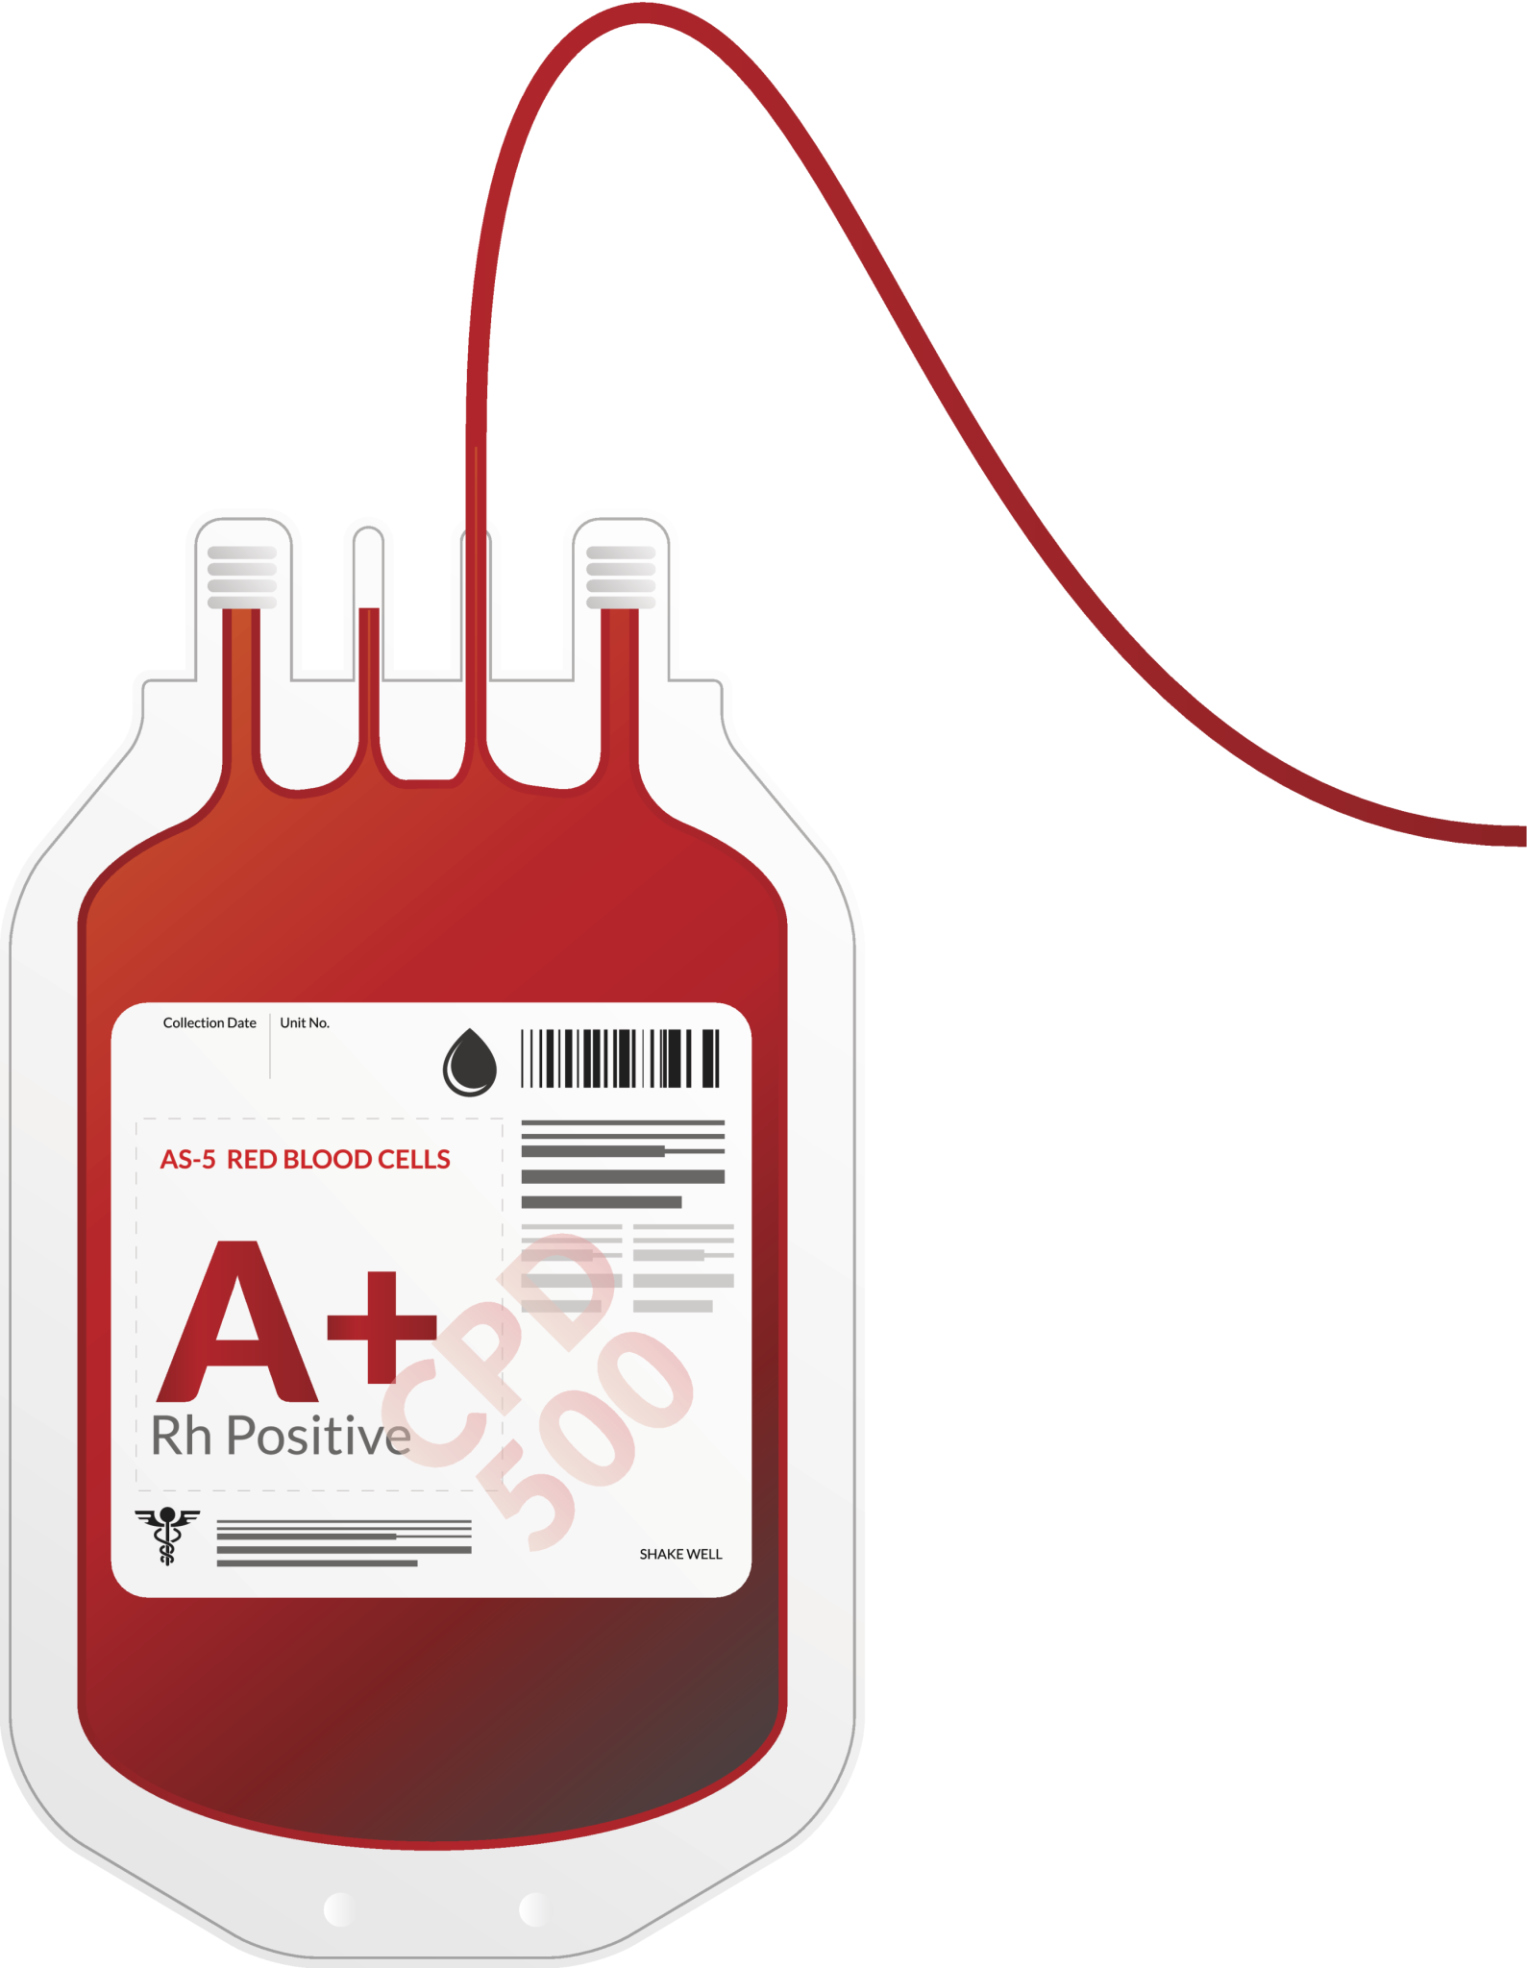 hight resolution of blood clipart pouch donation bag png transparent